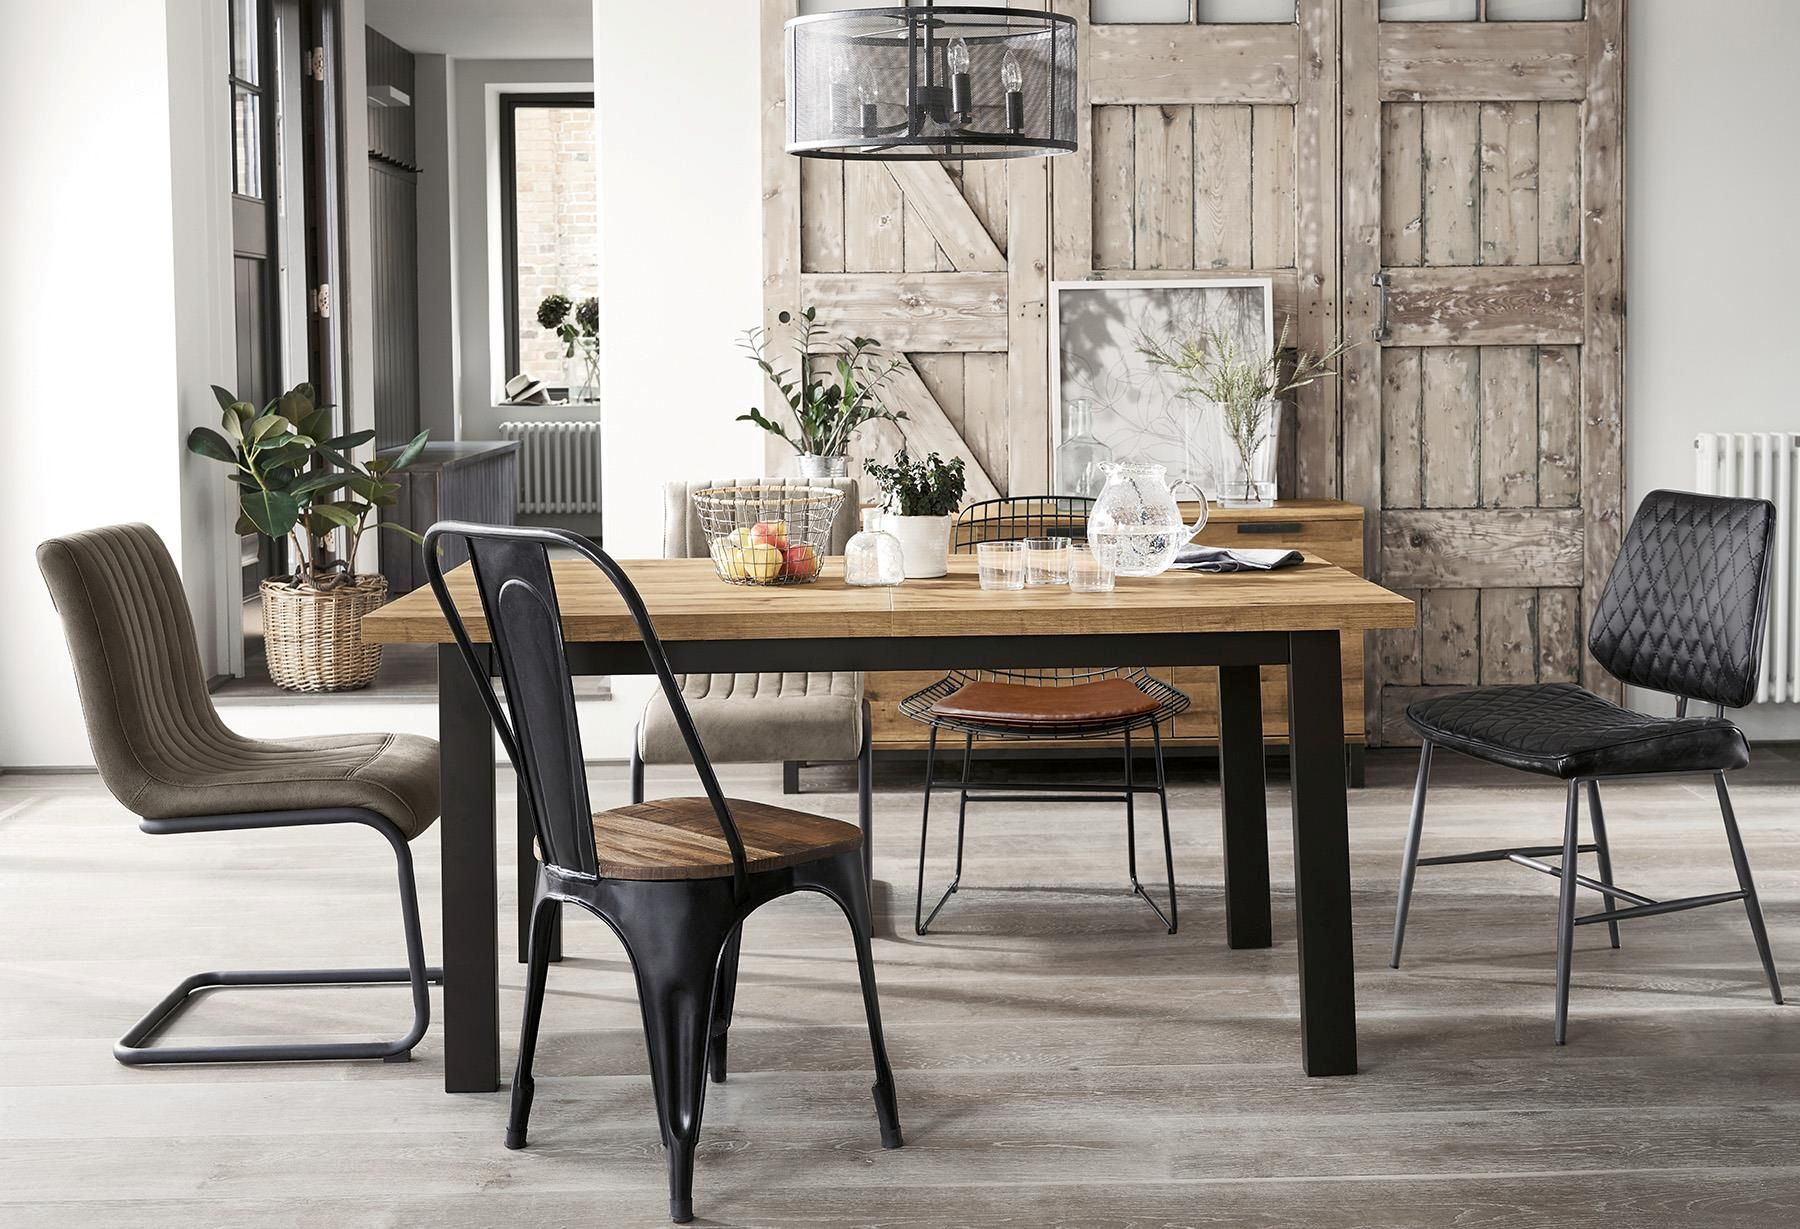 Buy Bronx 6-8 Seater Extending Dining Table from the Next ...